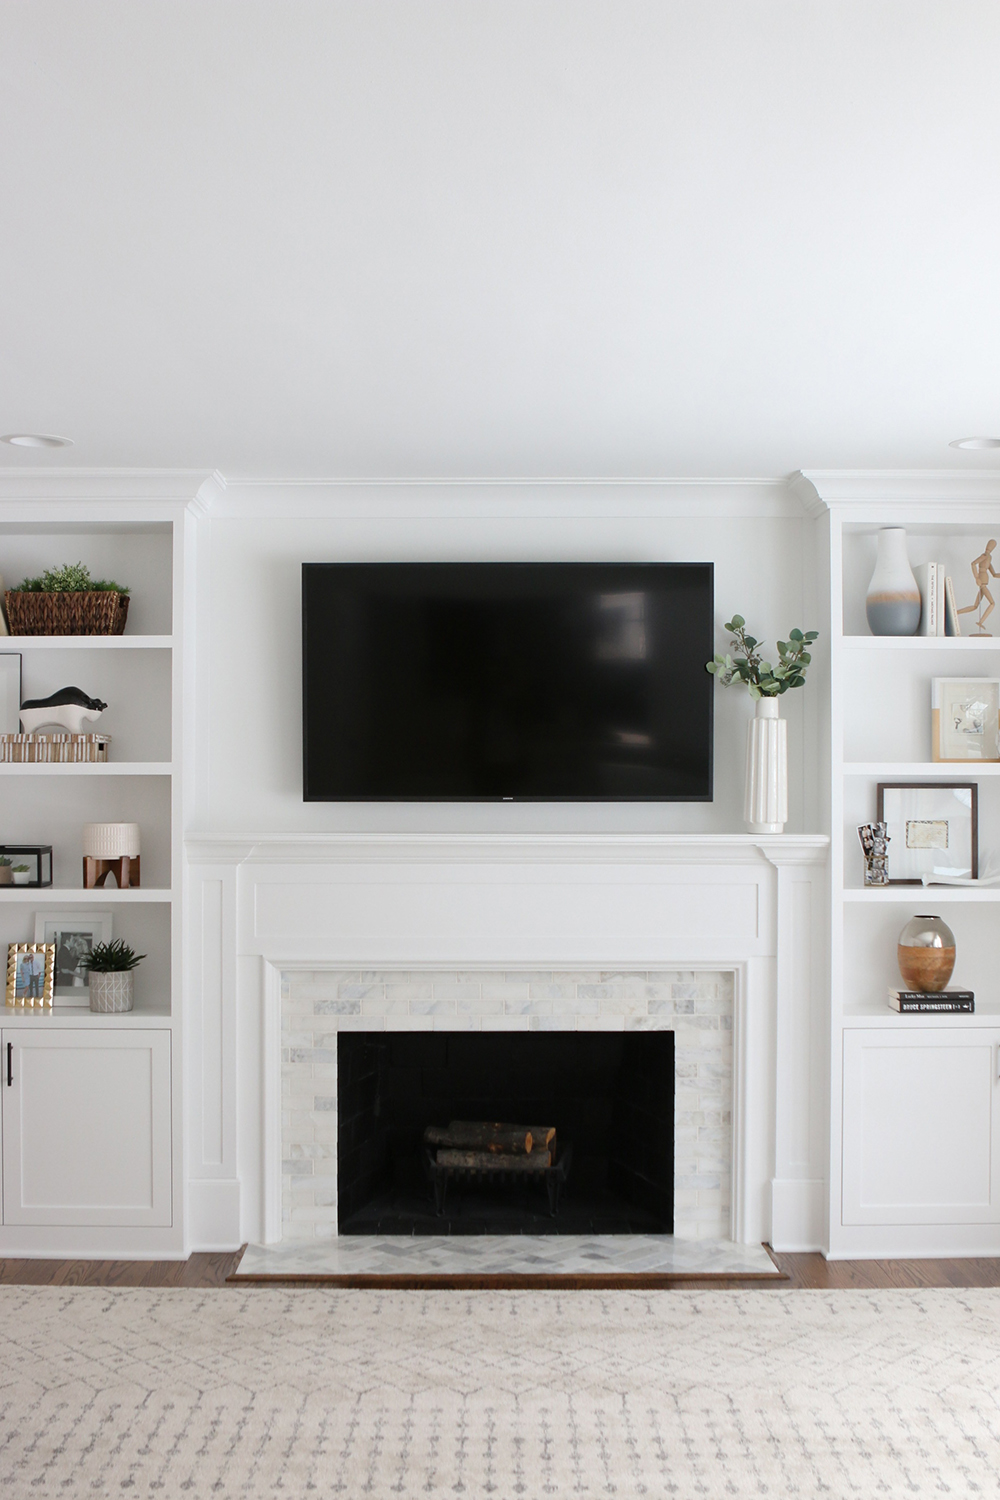 Home tour the diy playbook room for tuesday - Black and white fireplace ...